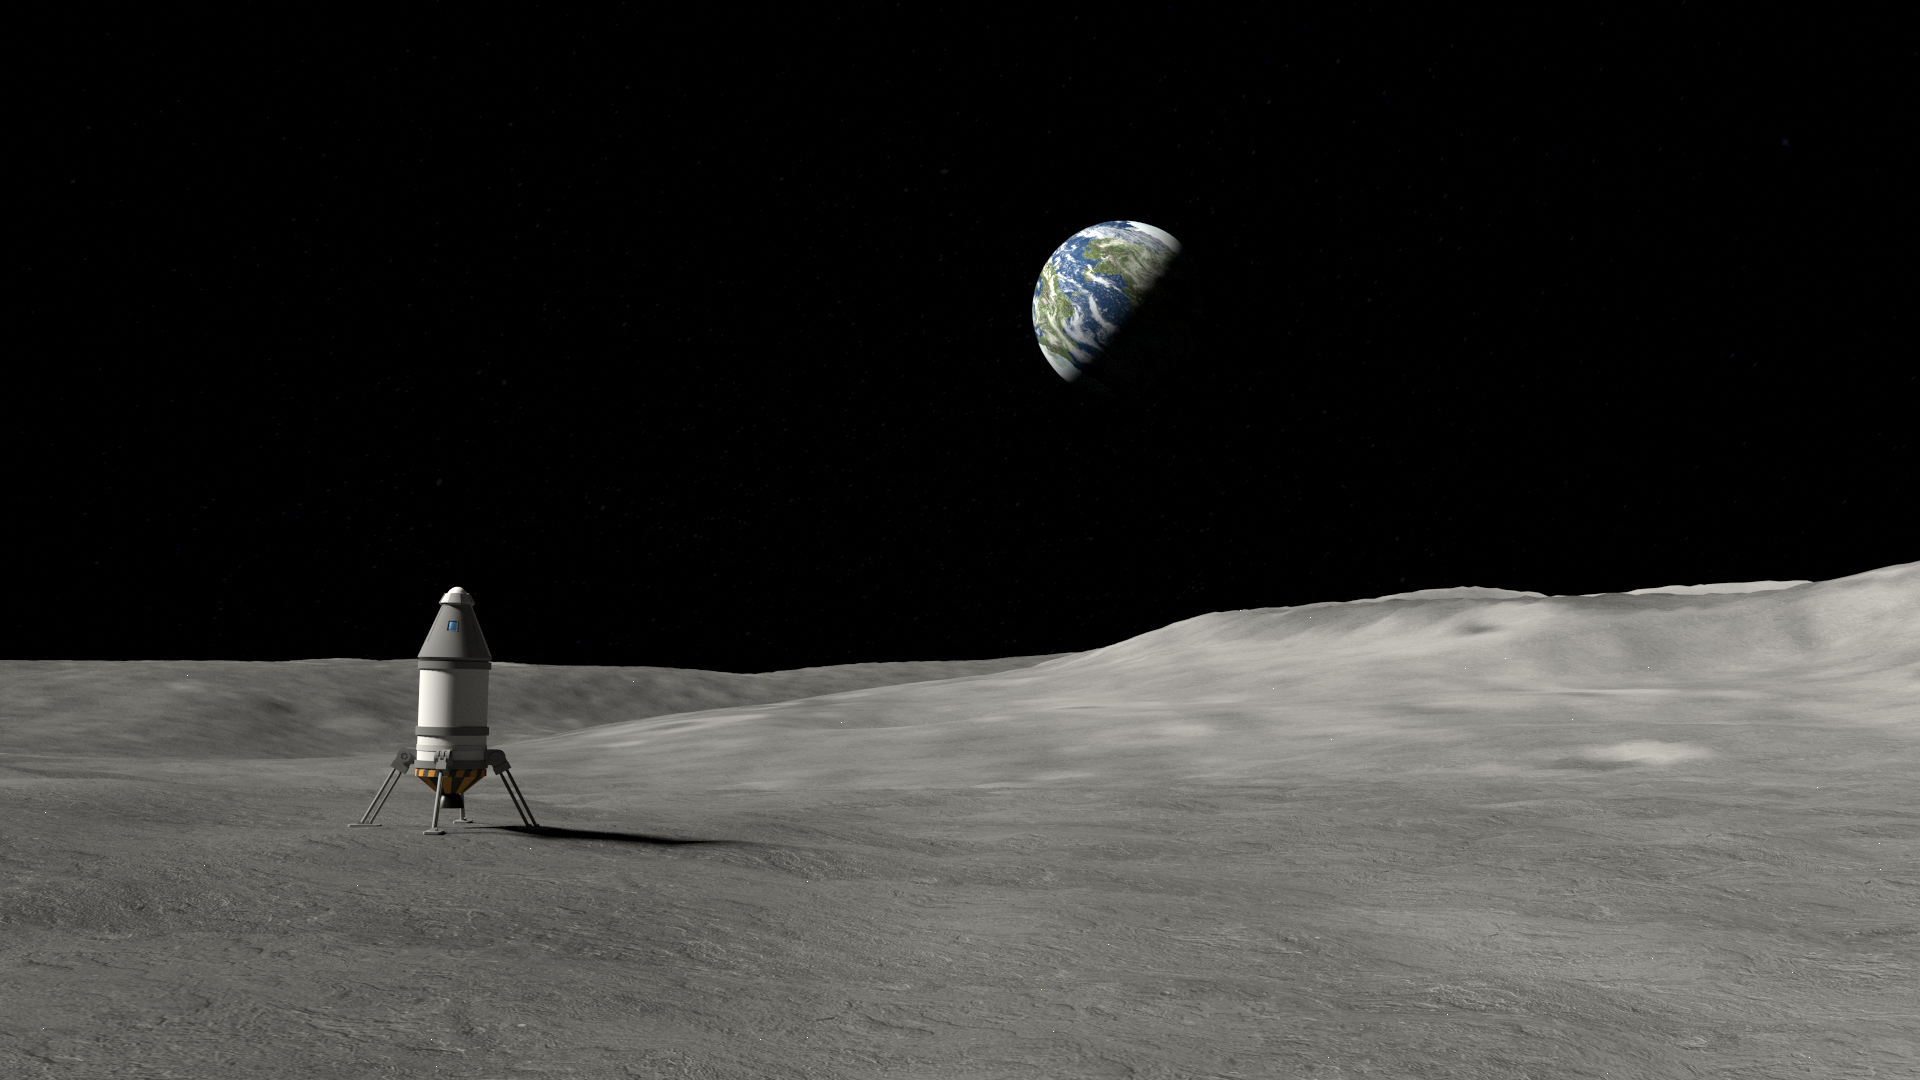 kerbal space program mun landing - photo #1